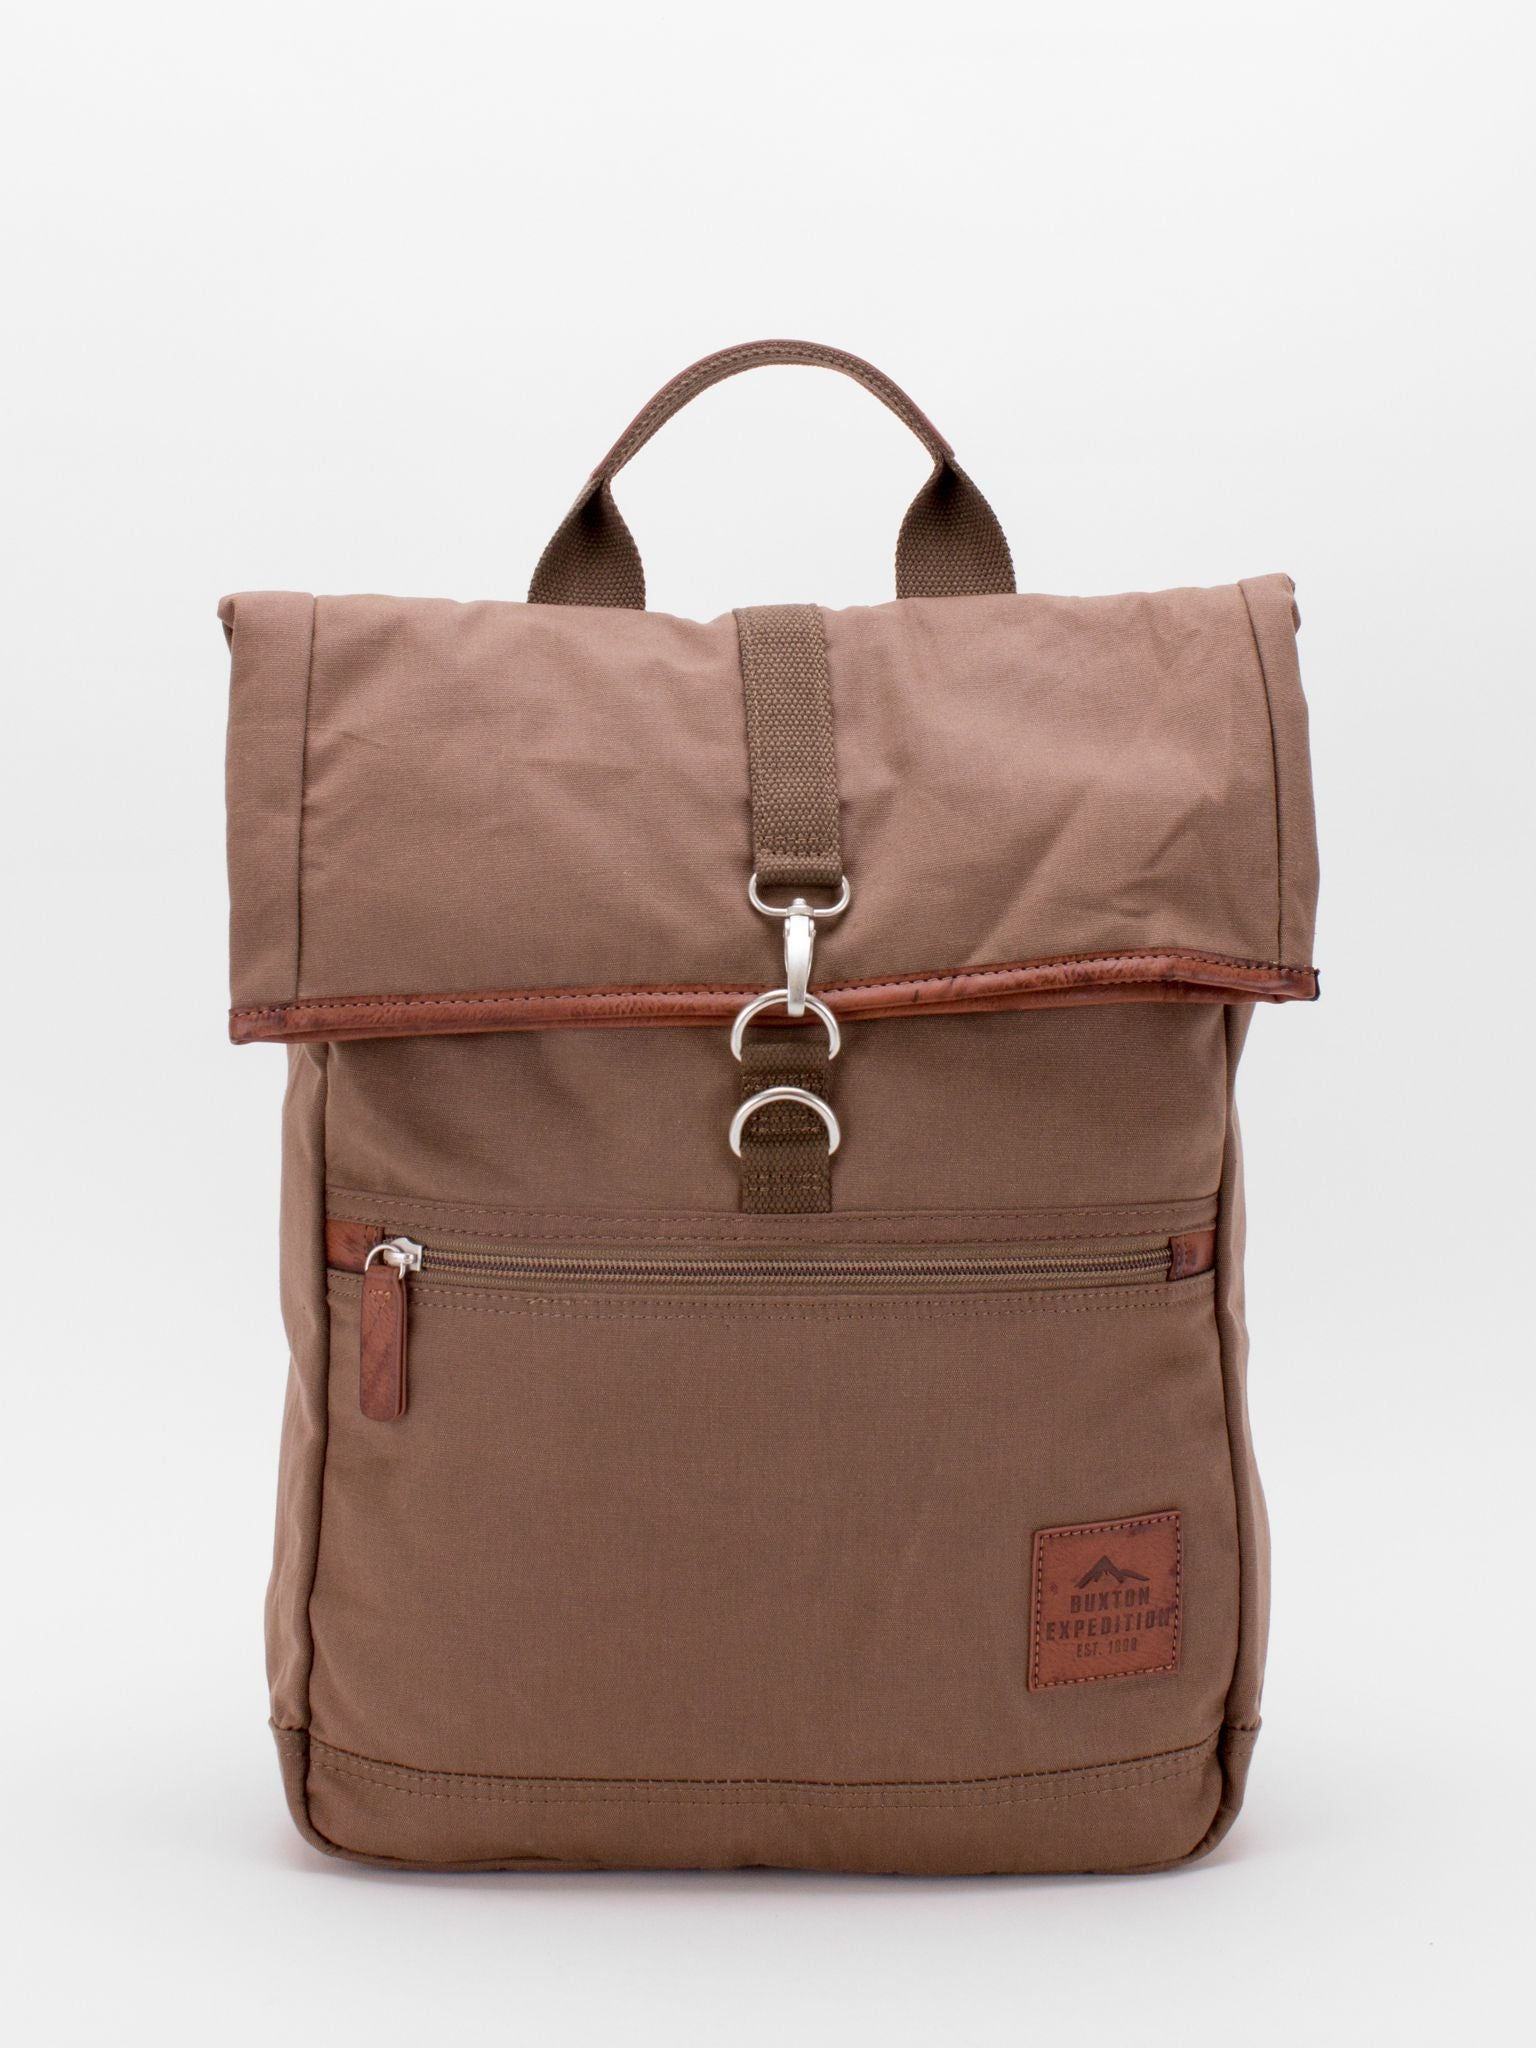 Expedition Fold Over Backpack - Tan